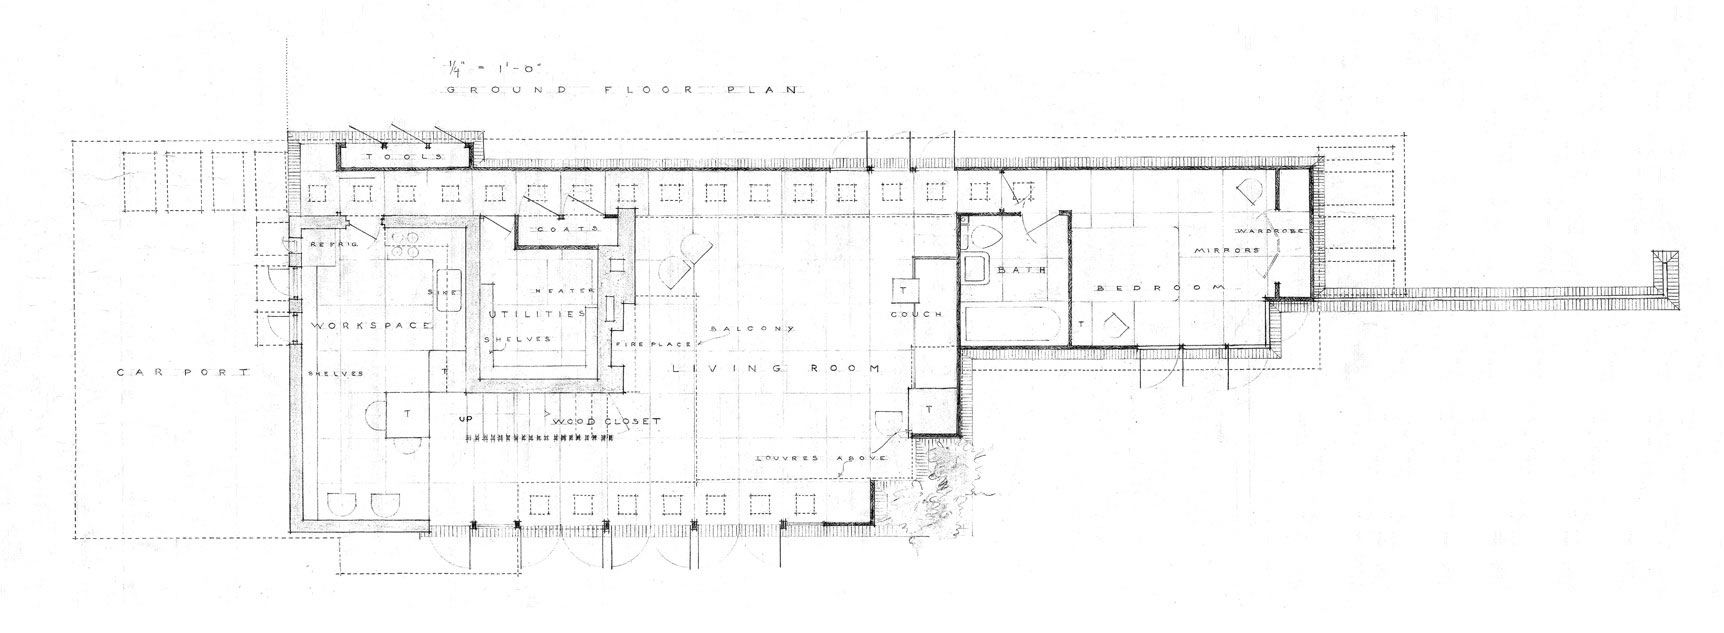 Frank lloyd wright usonian house stories google search Frank lloyd wright floor plan